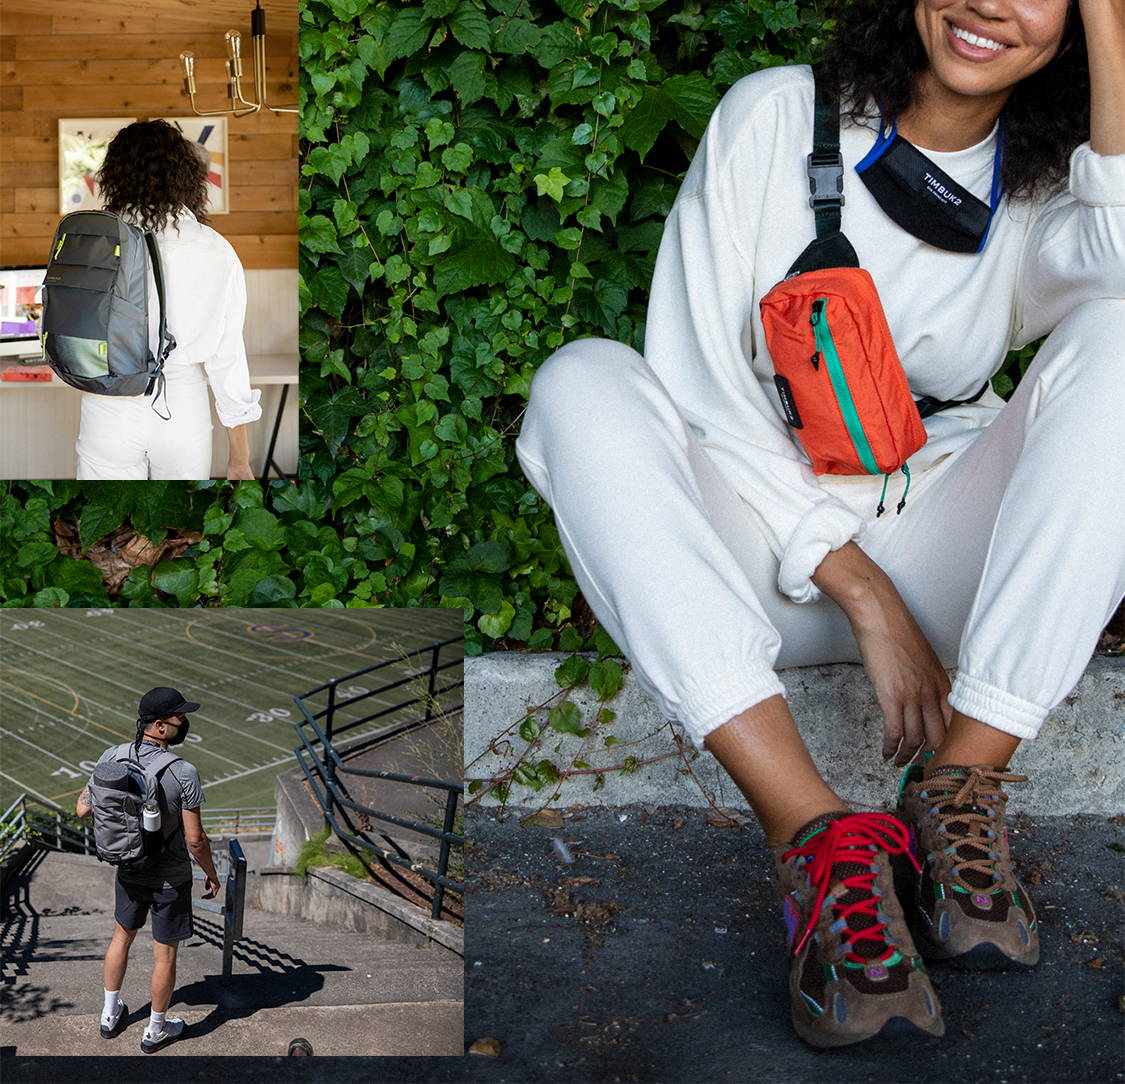 Three image collage of a woman wearing the Rascal belt bag, and Lane Pack. A man is in another image with the Authority DLX.